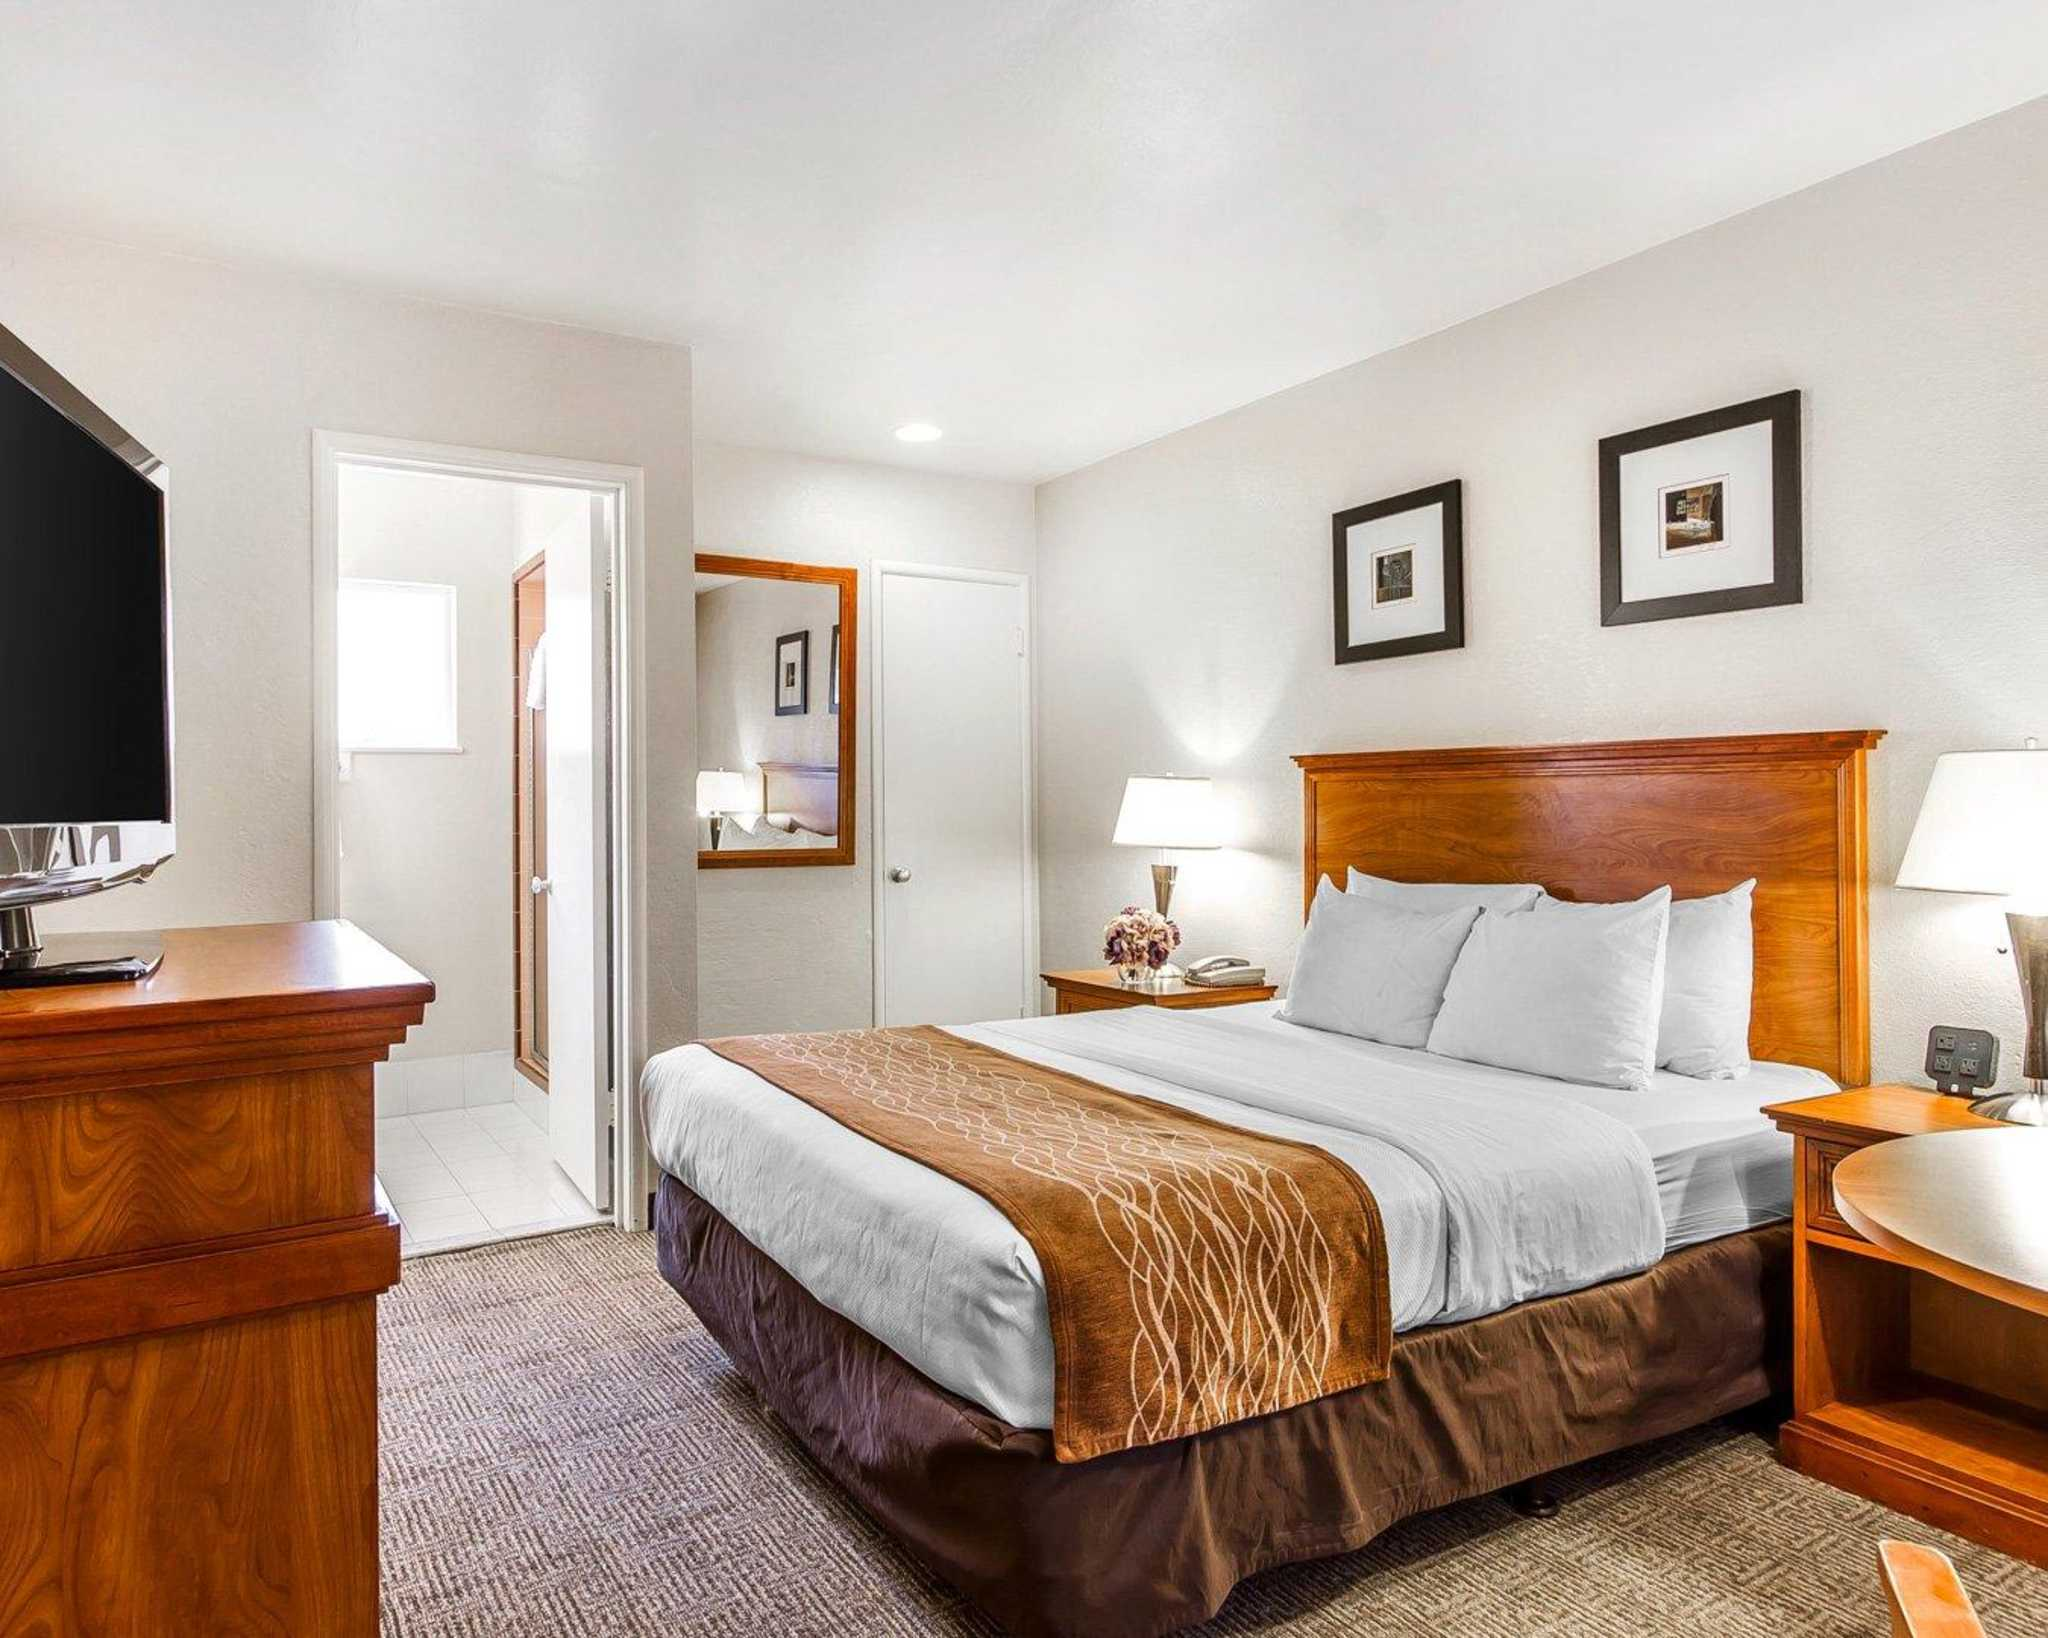 Comfort Inn Monterey by the Sea - Closed image 0